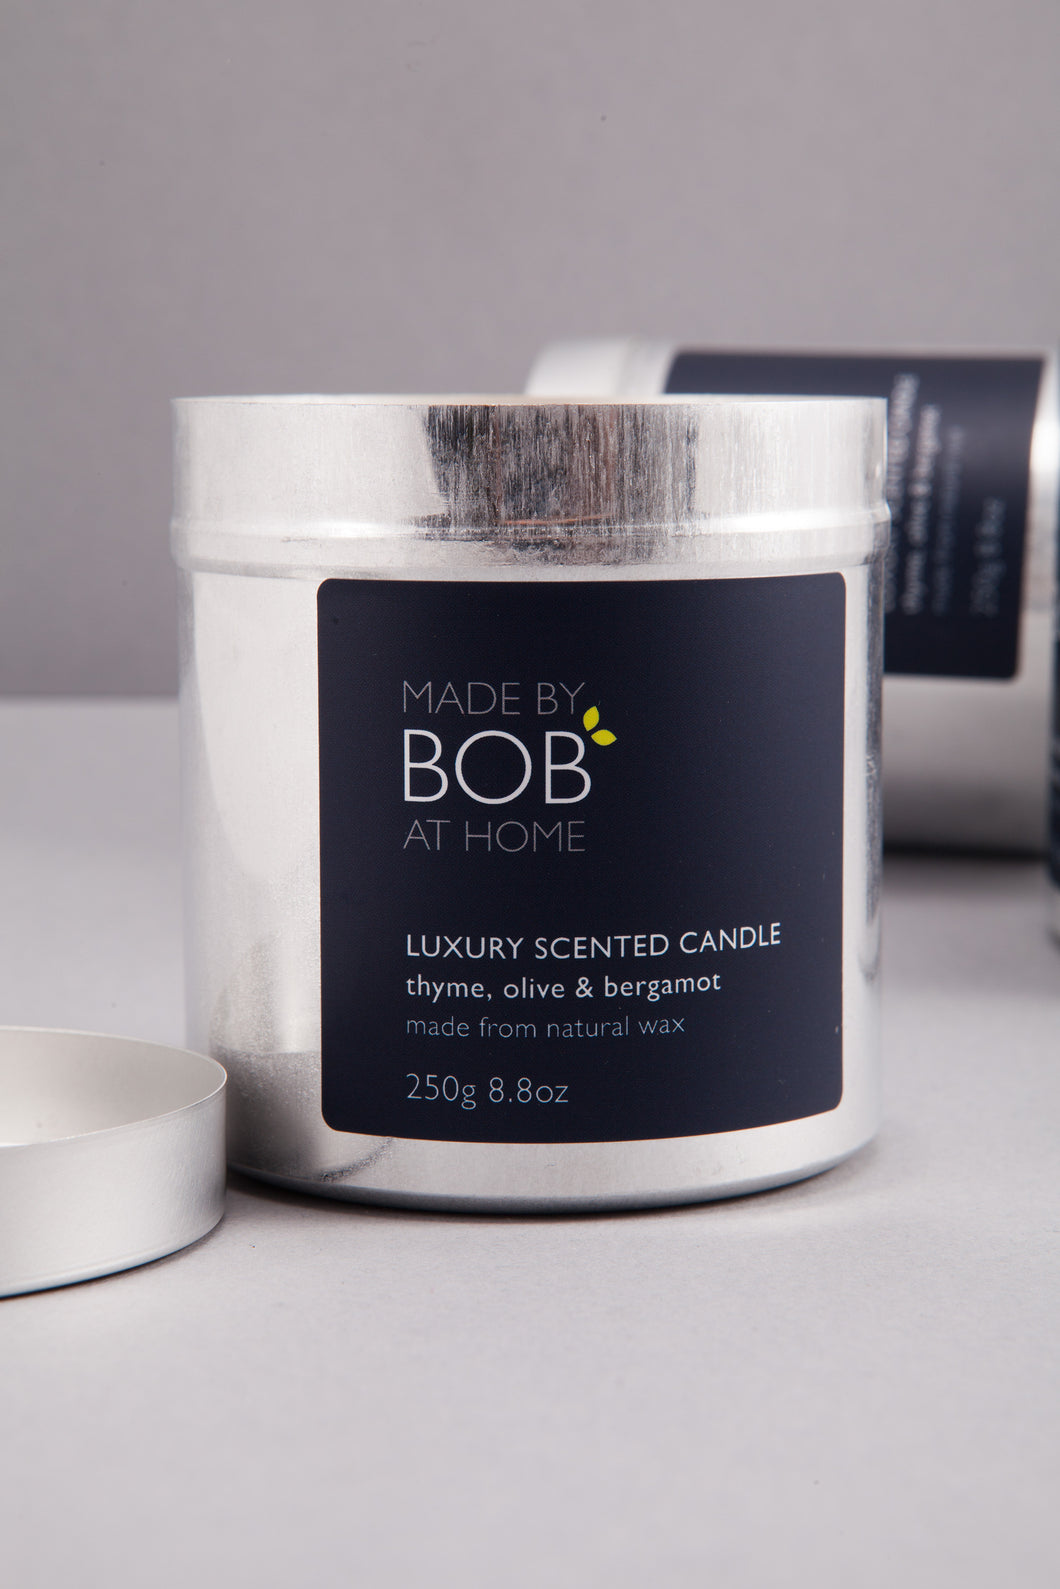 Luxury Scented Candle, Made by Bob at Home